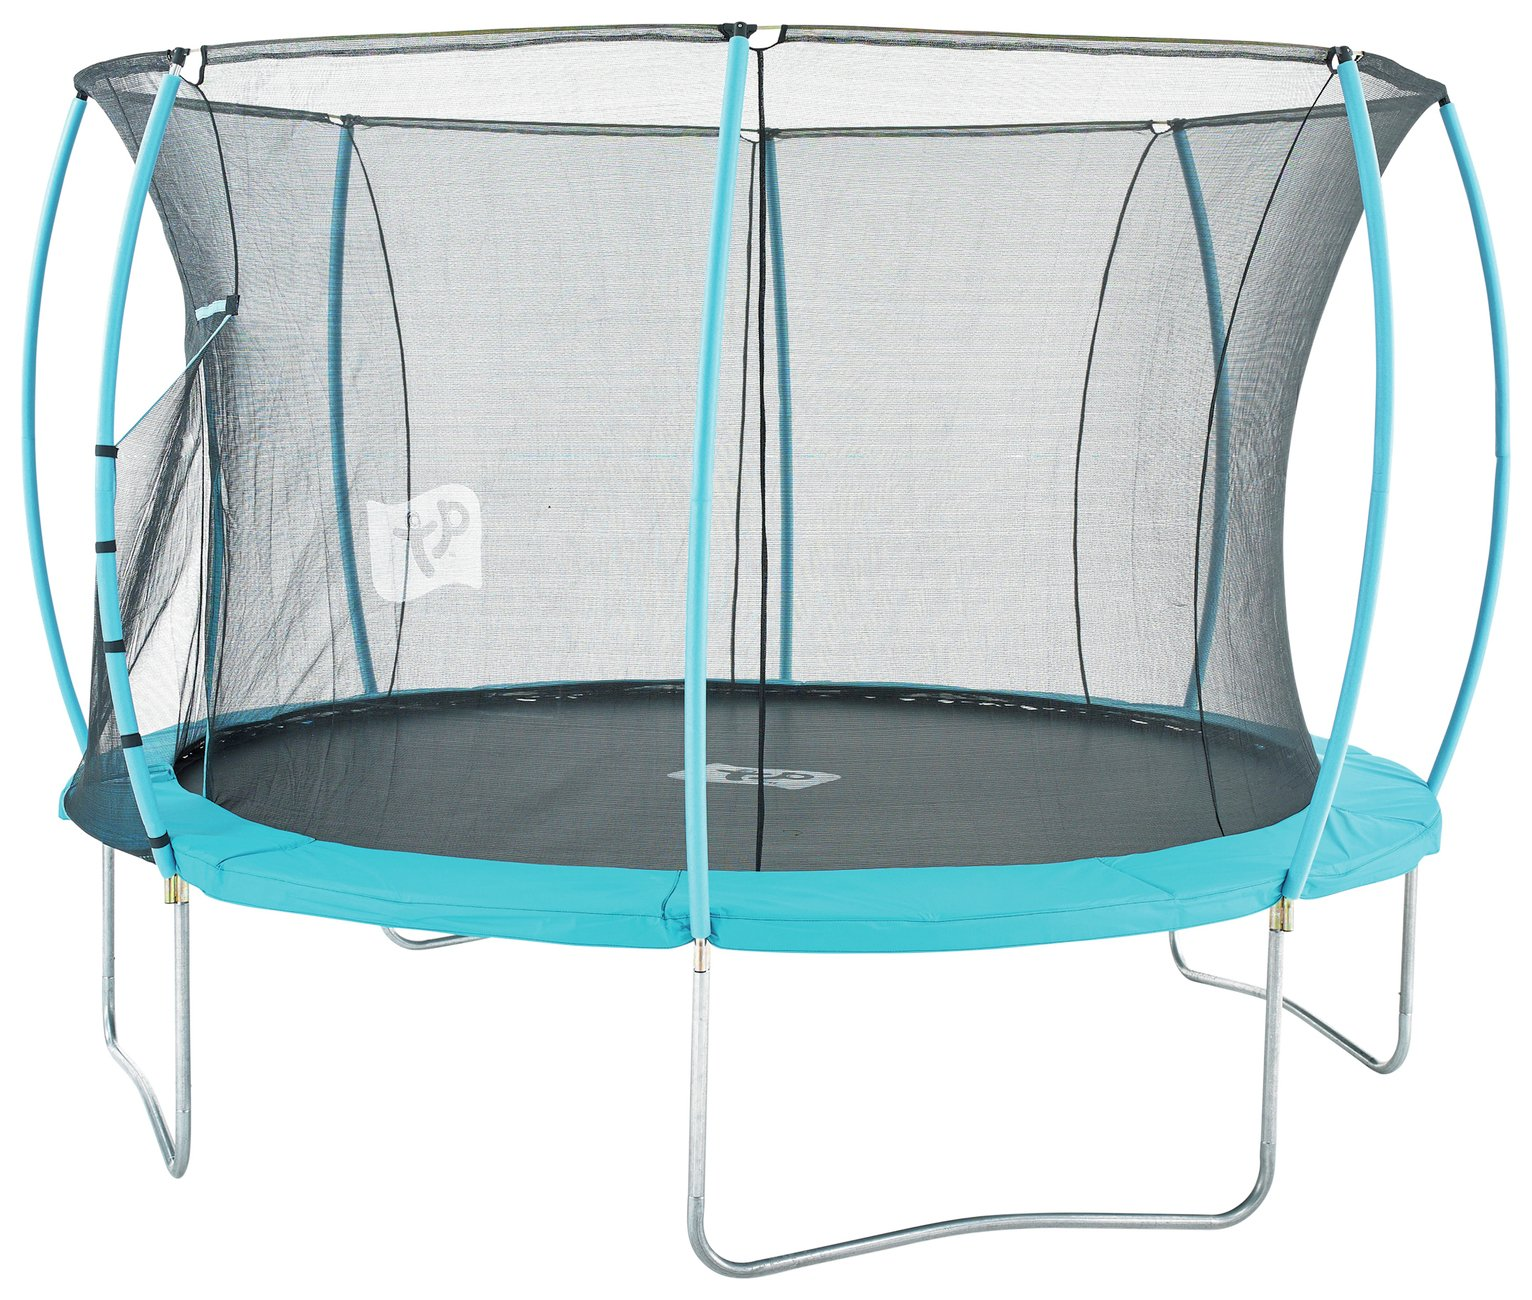 Image of TP 12ft Hip Hop Trampoline with Enclosure